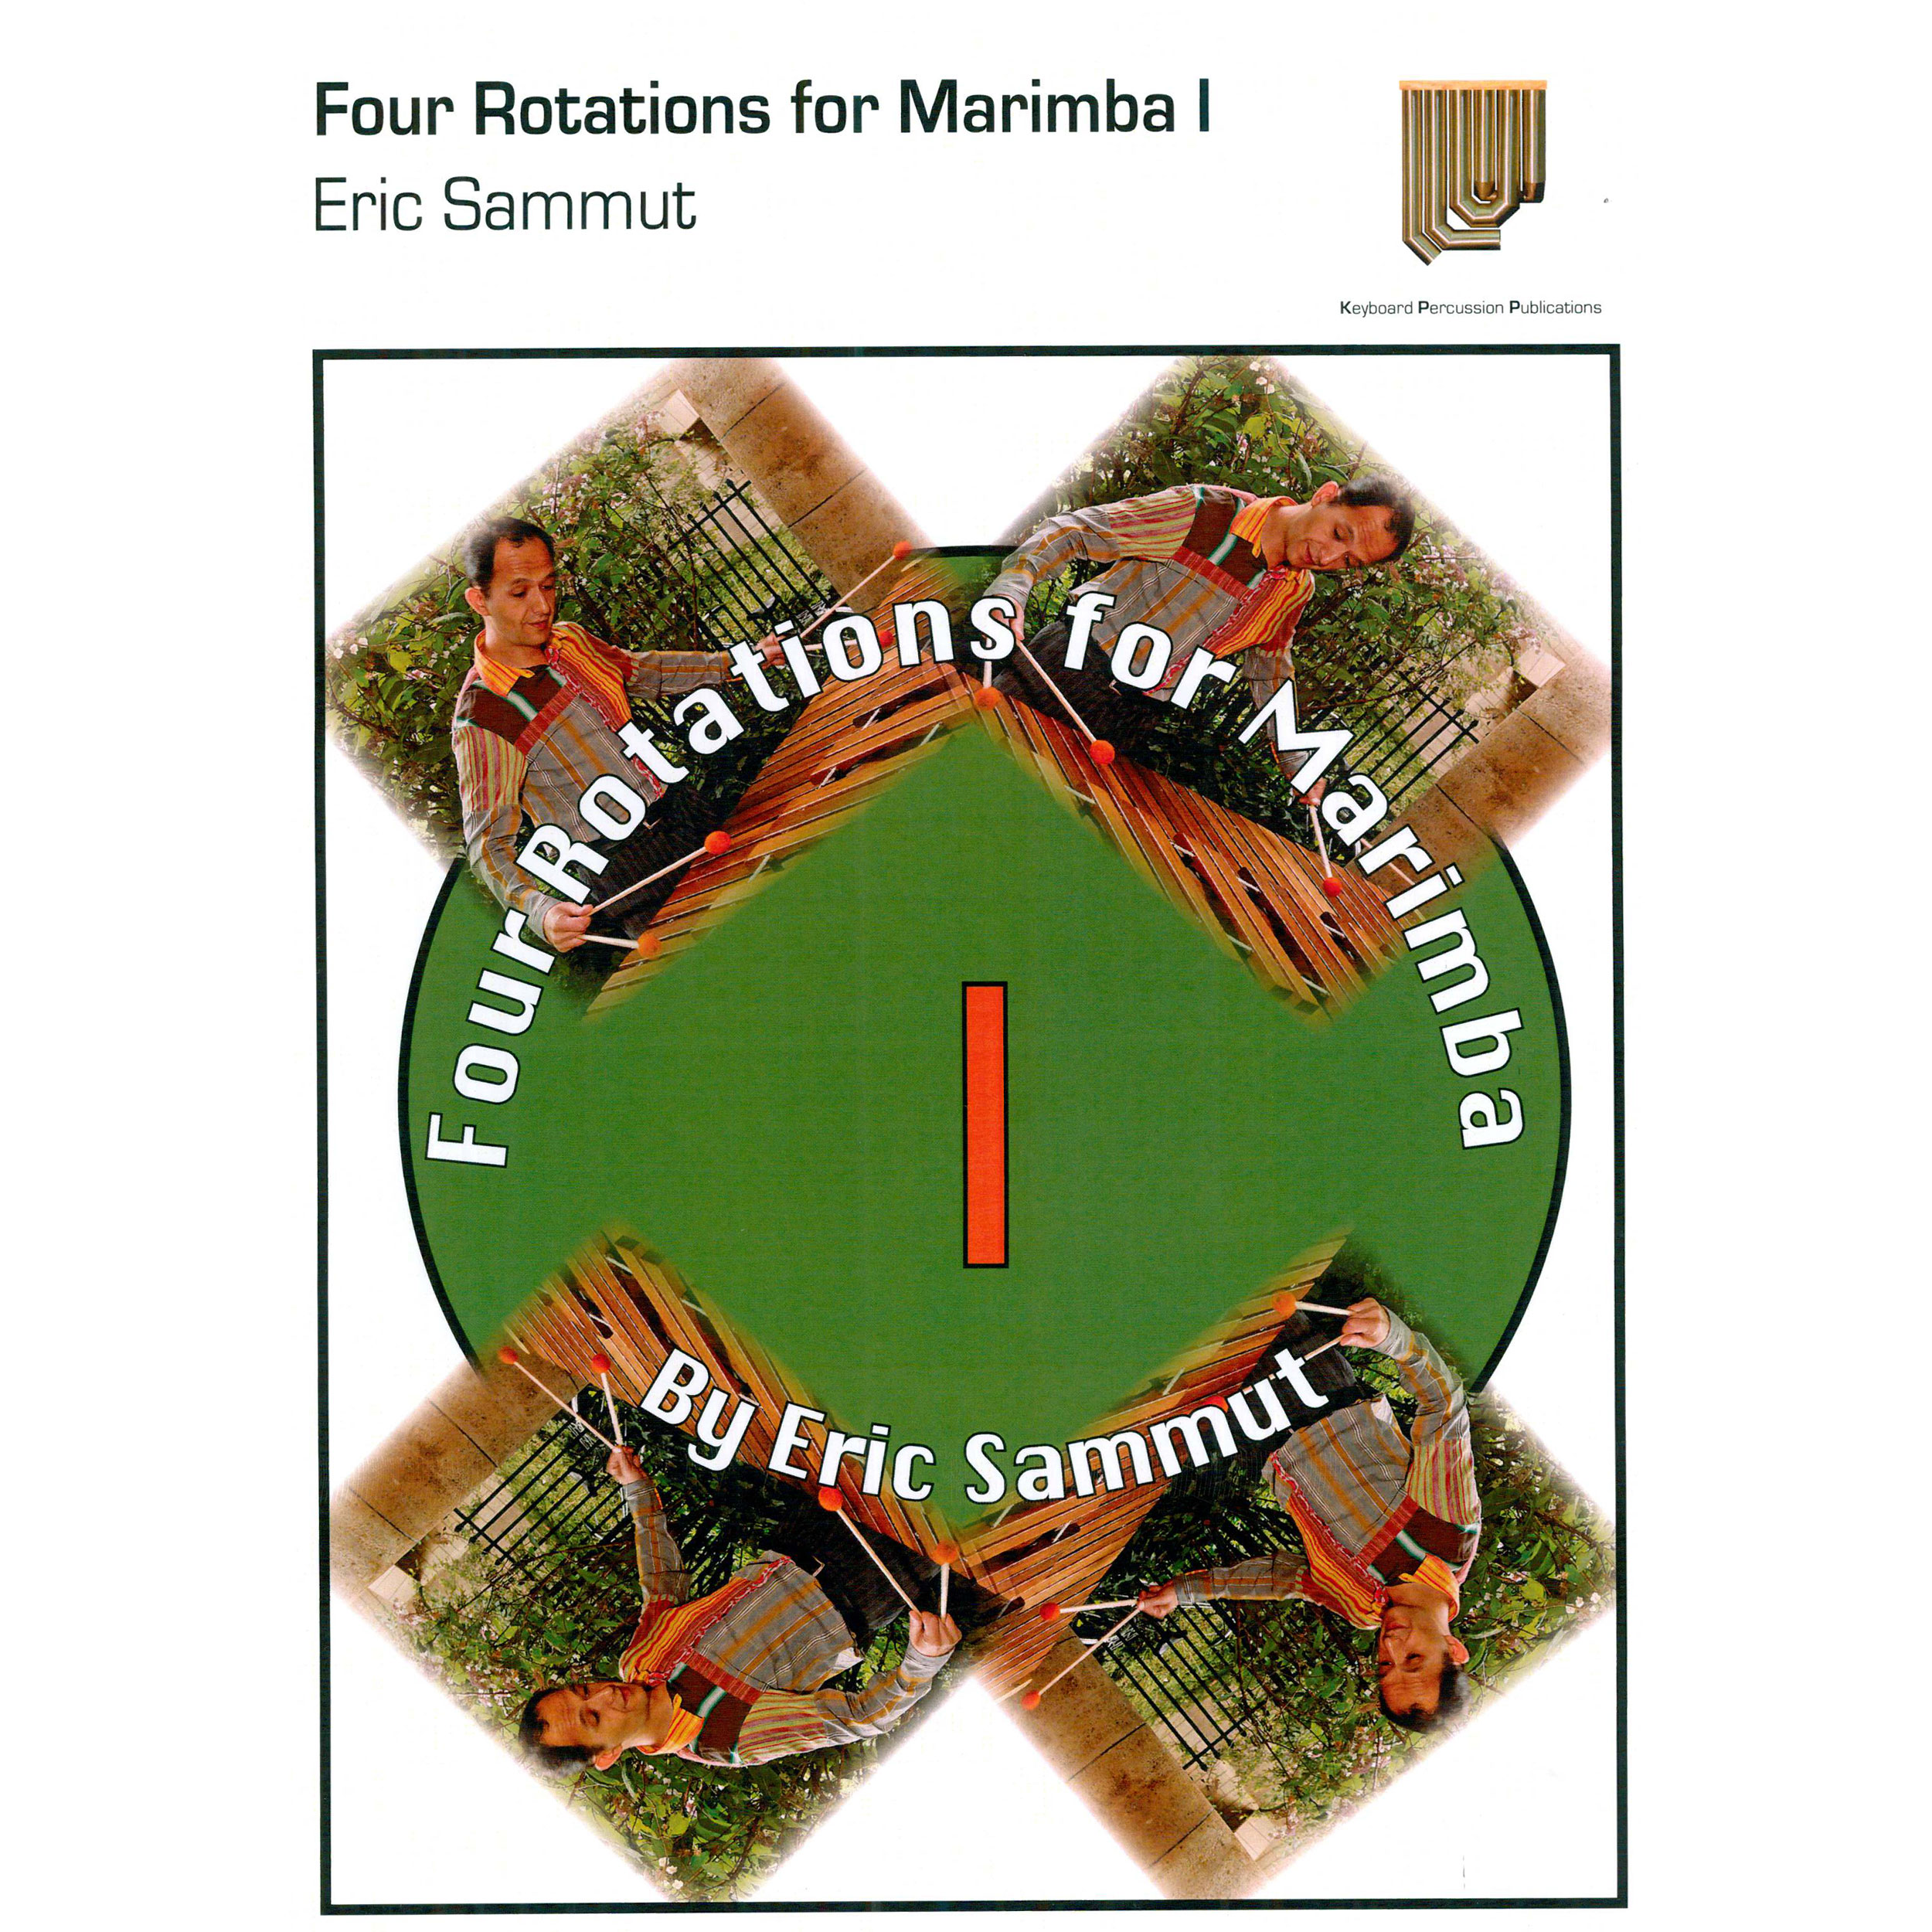 Four Rotations for Marimba I by Eric Sammut